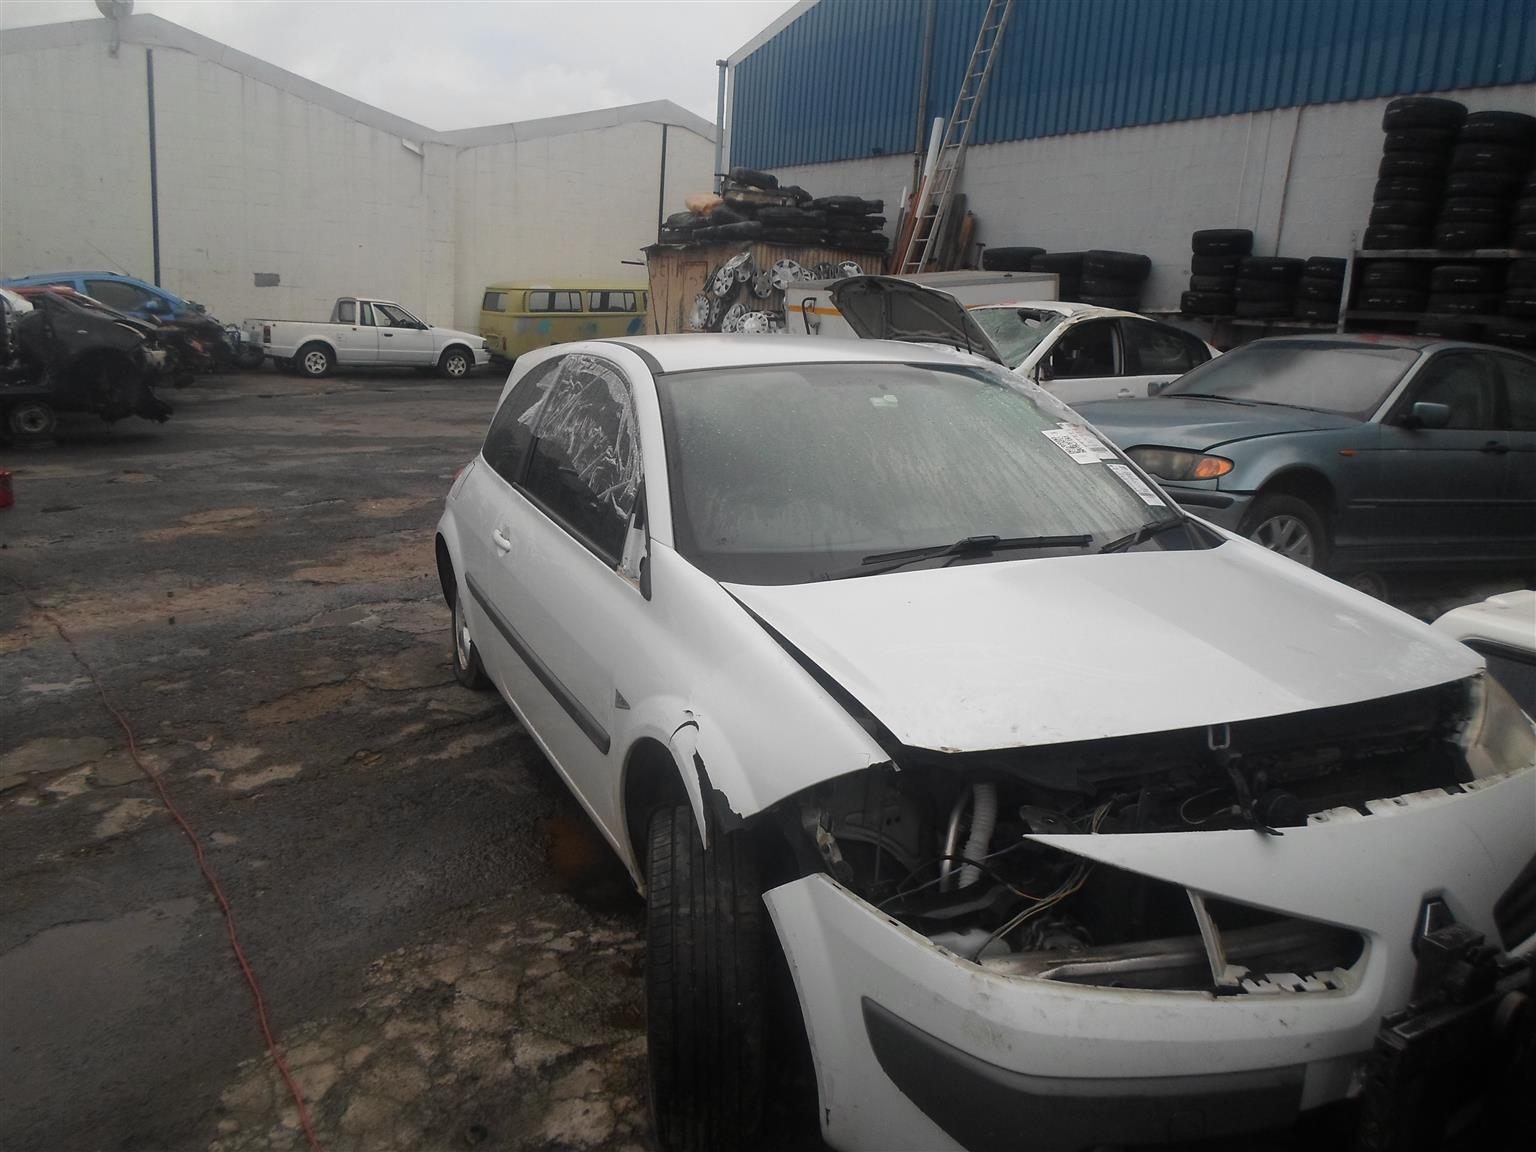 2007 Renault Megane Spares available